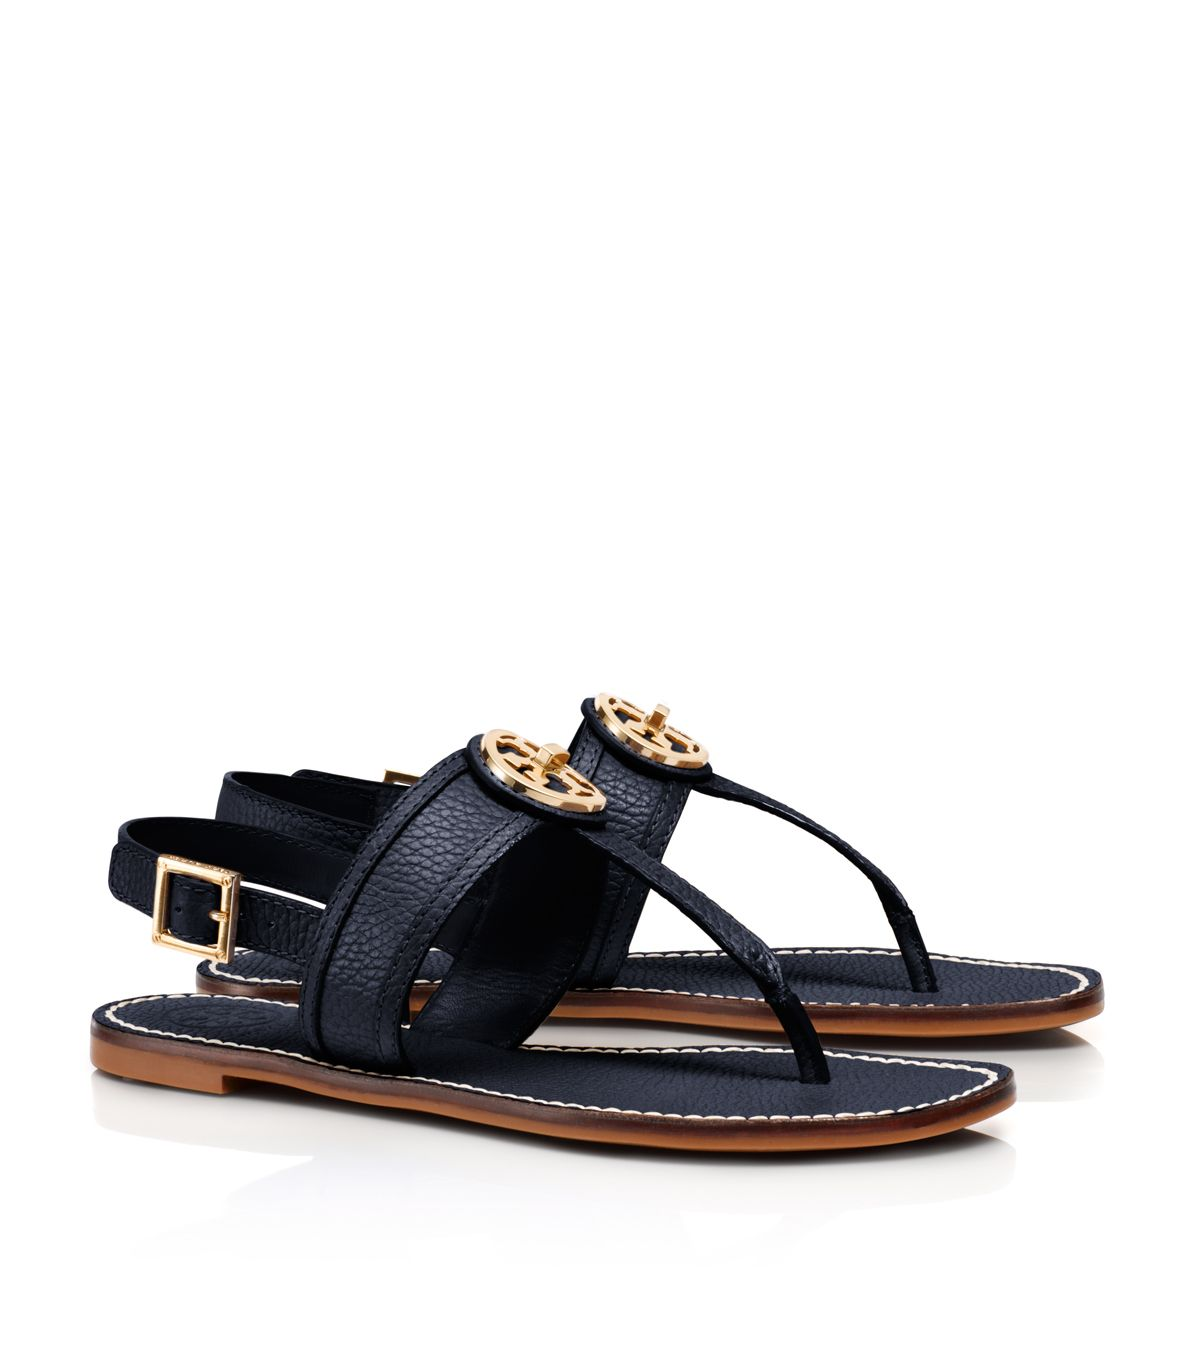 Tory Burch Logo Slingback Sandals cheap sale the cheapest 2HRWG